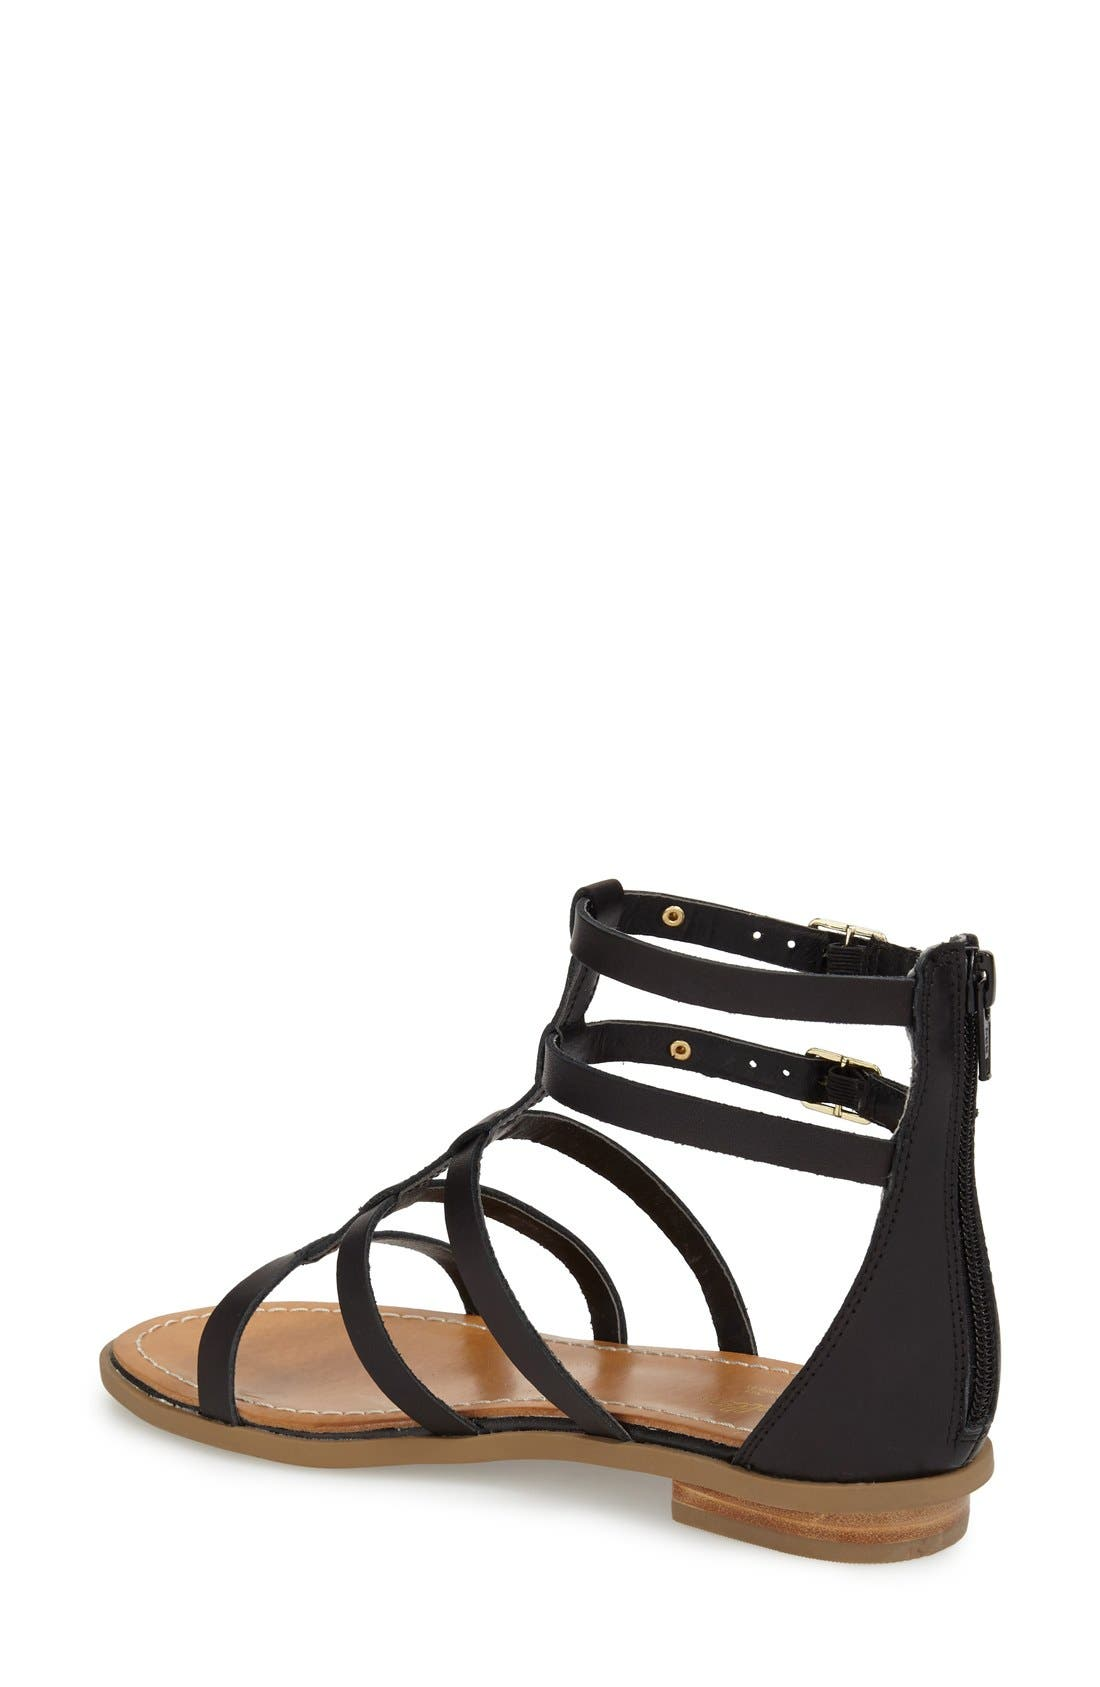 Alternate Image 2  - Seychelles 'Peachy' Gladiator Flat Sandal (Women)